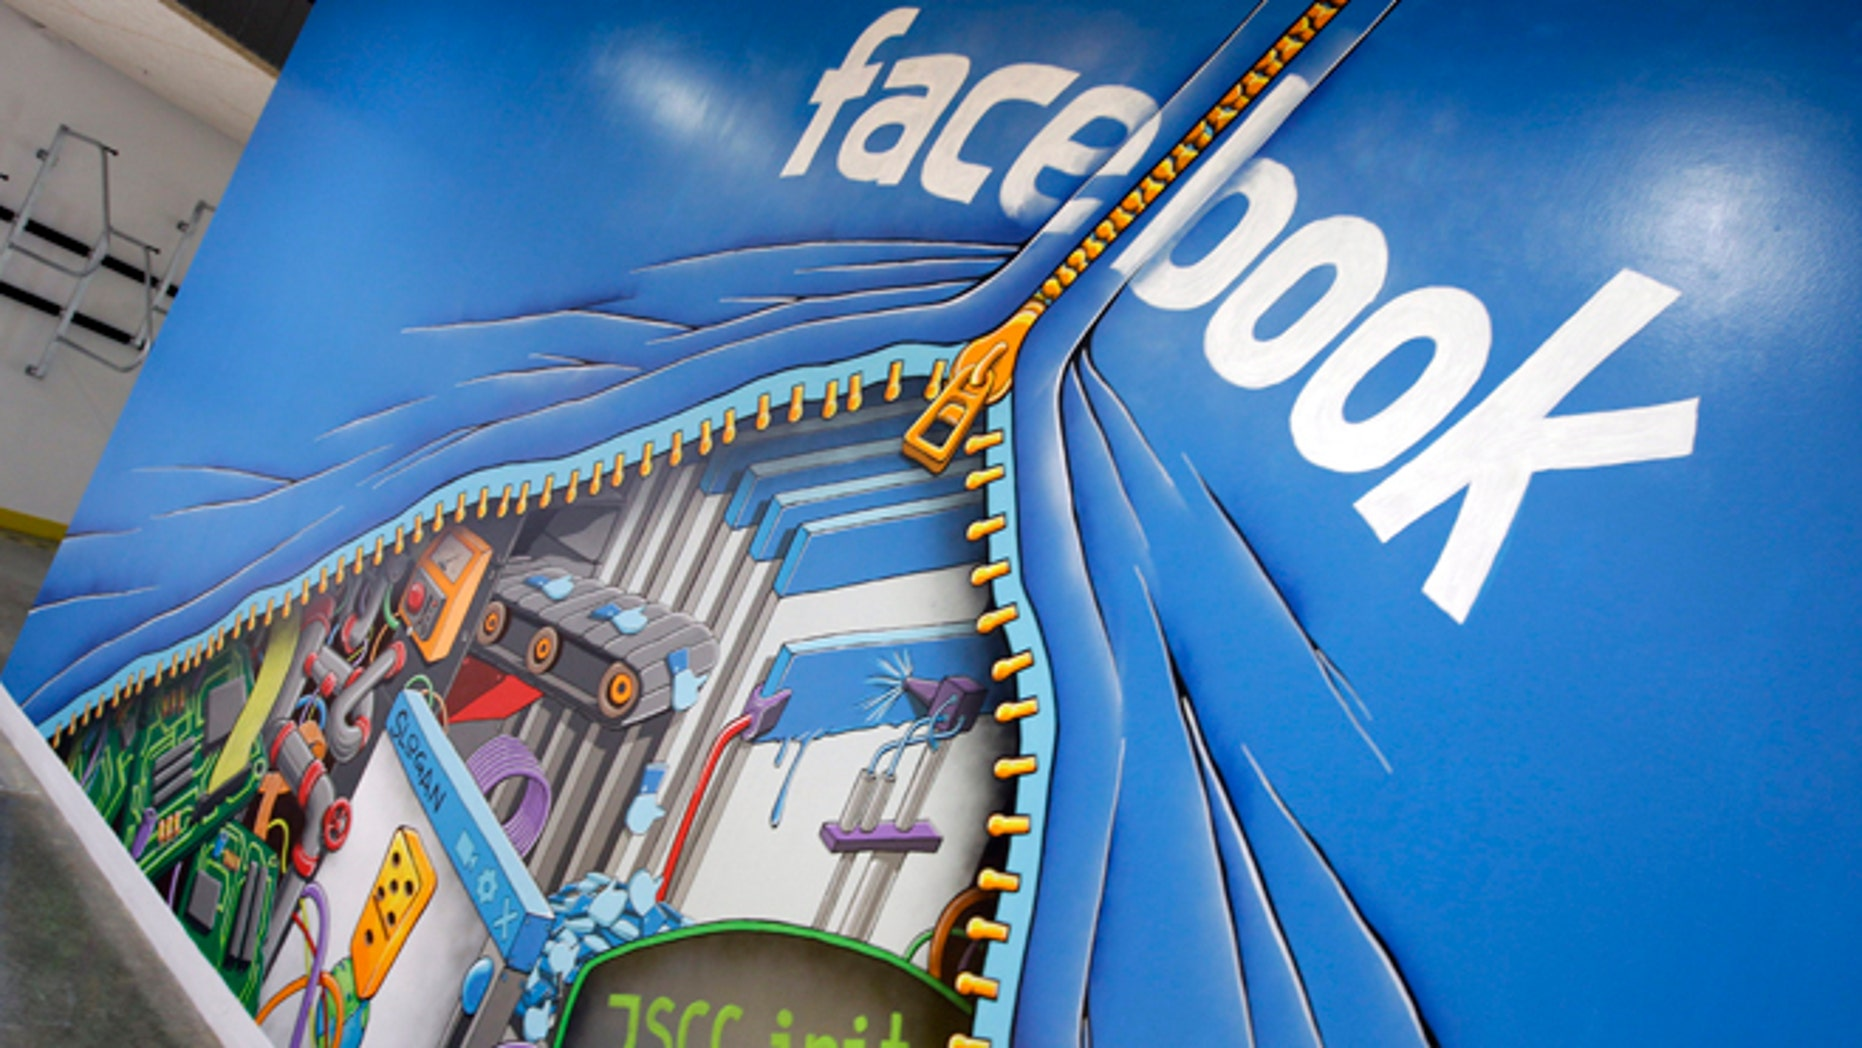 Feb. 8, 2012: This photo shows a mural at Facebook headquarters in Menlo Park, Calif.